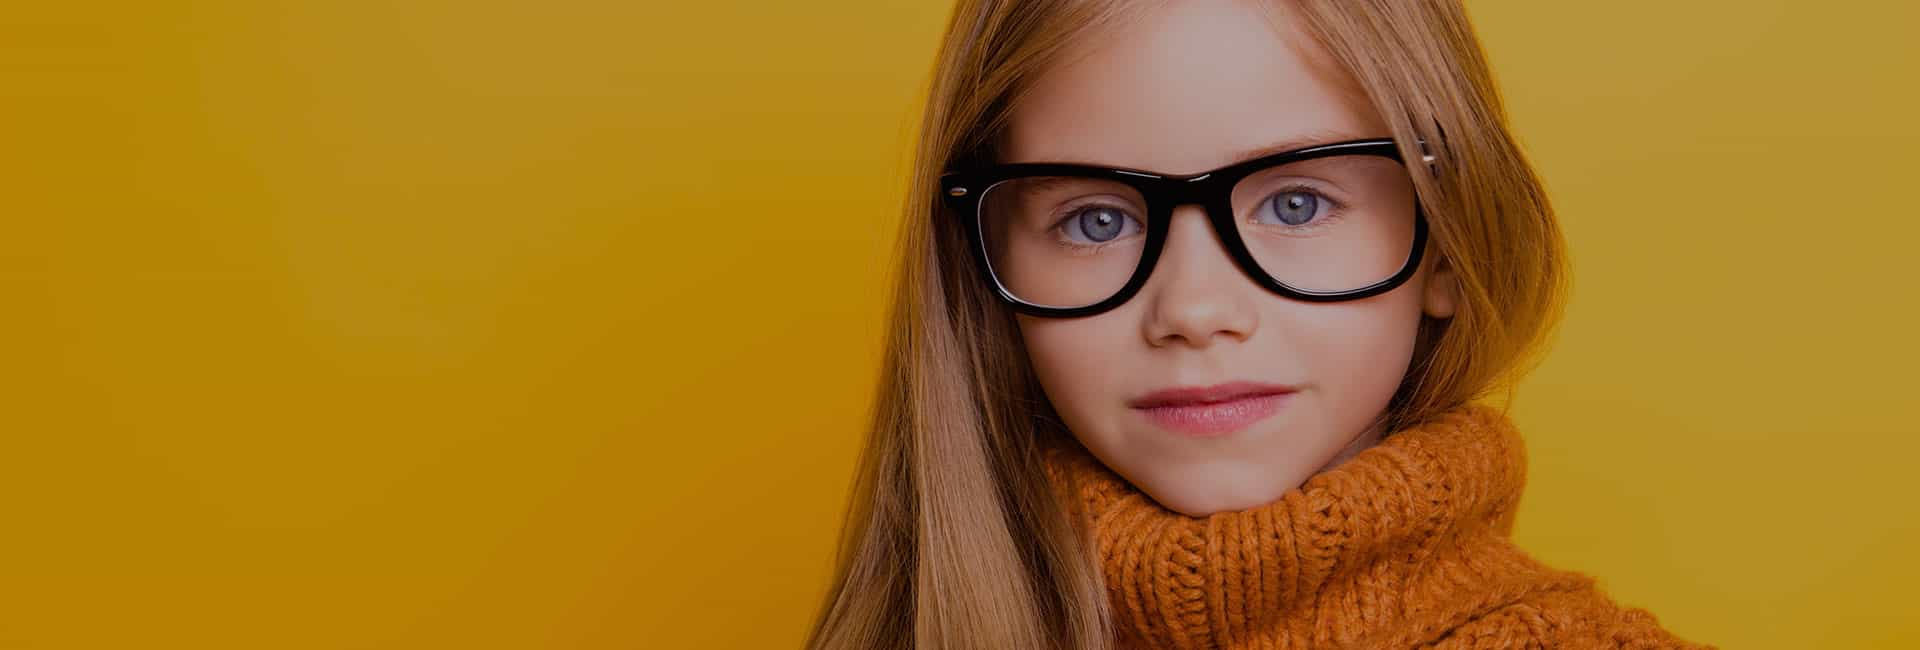 Eye Exams and the Process with The Children's Eyeglass Store